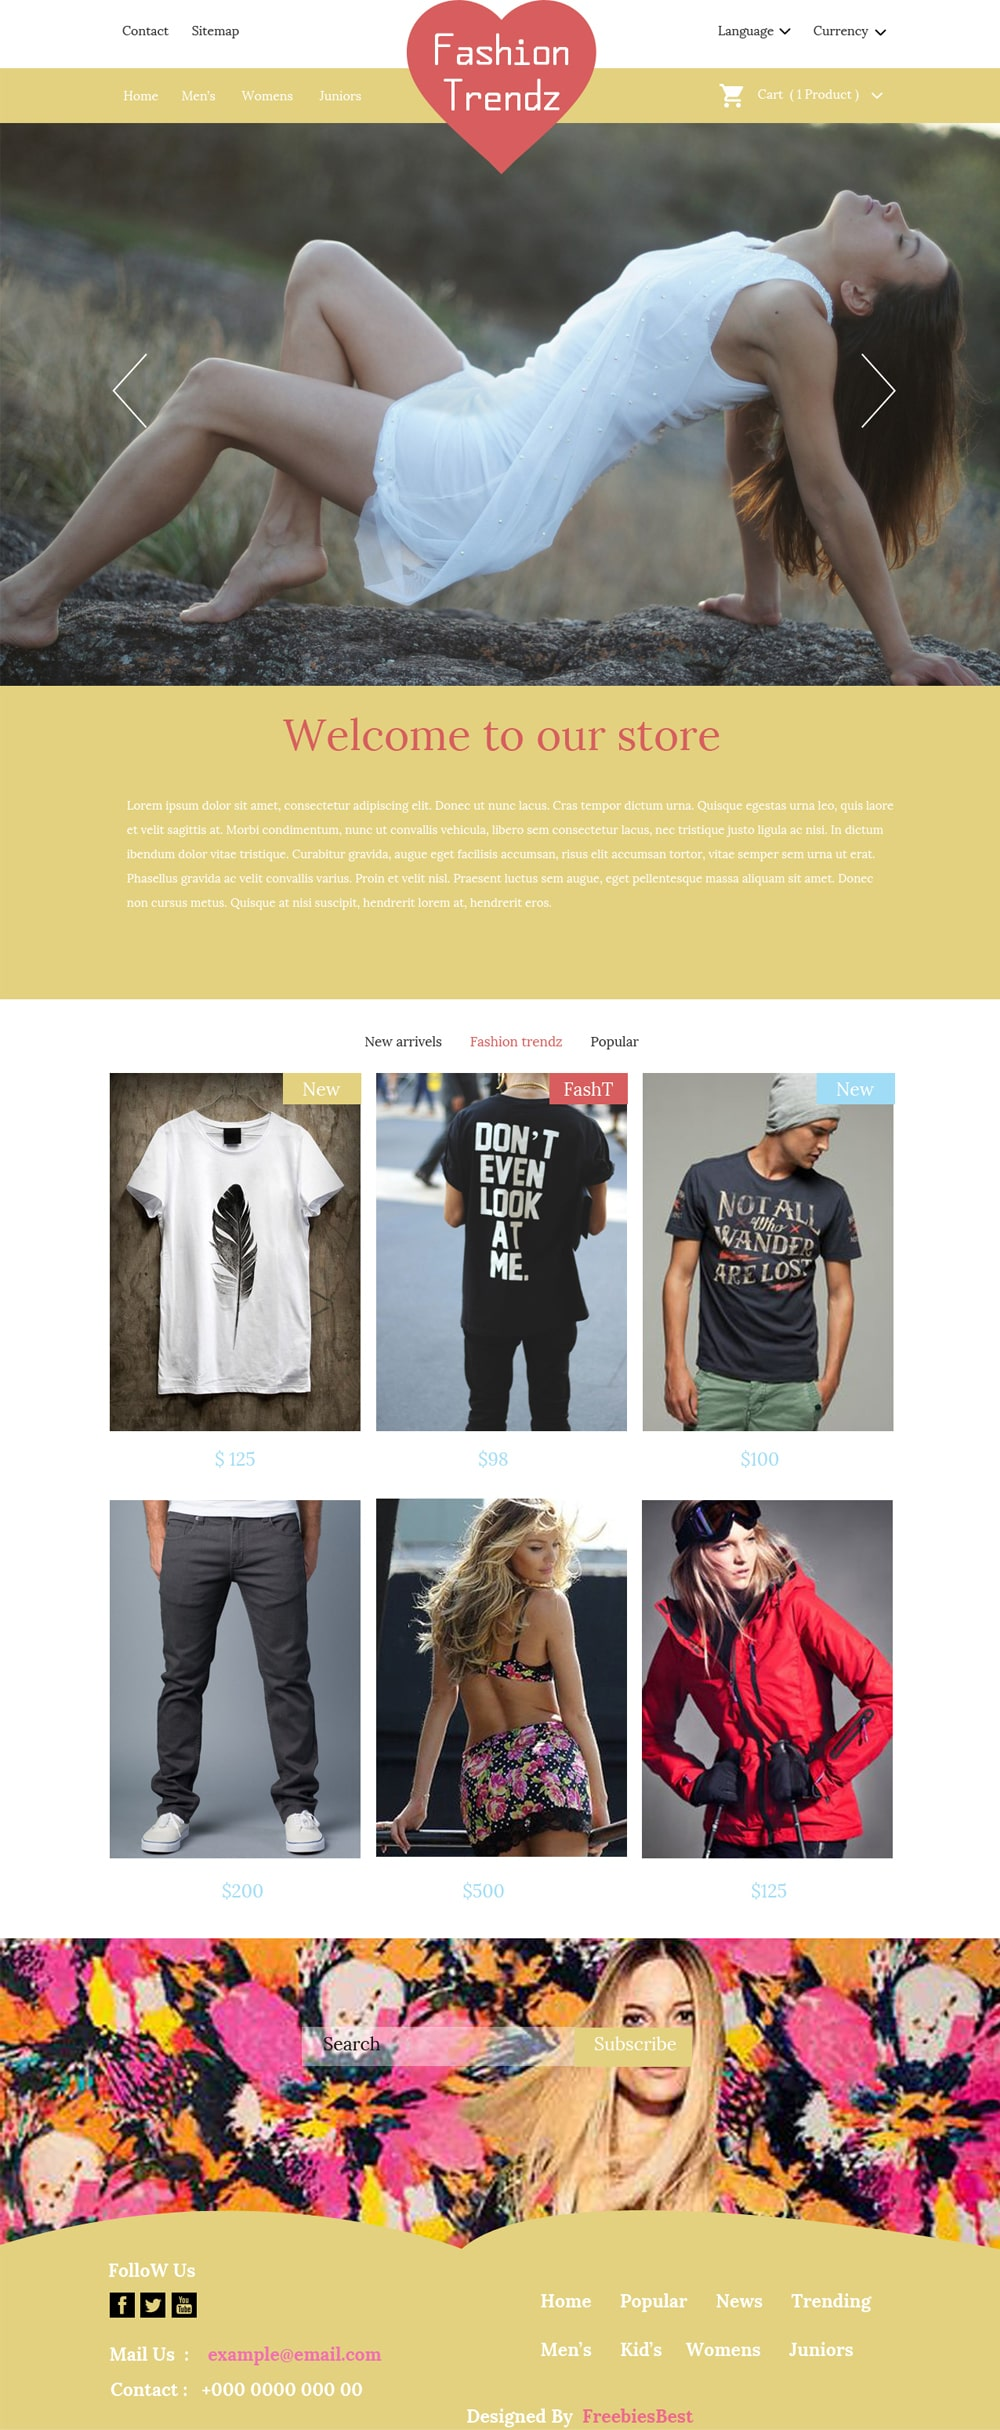 Fashion Trendz - Free Ecommerce Template PSD